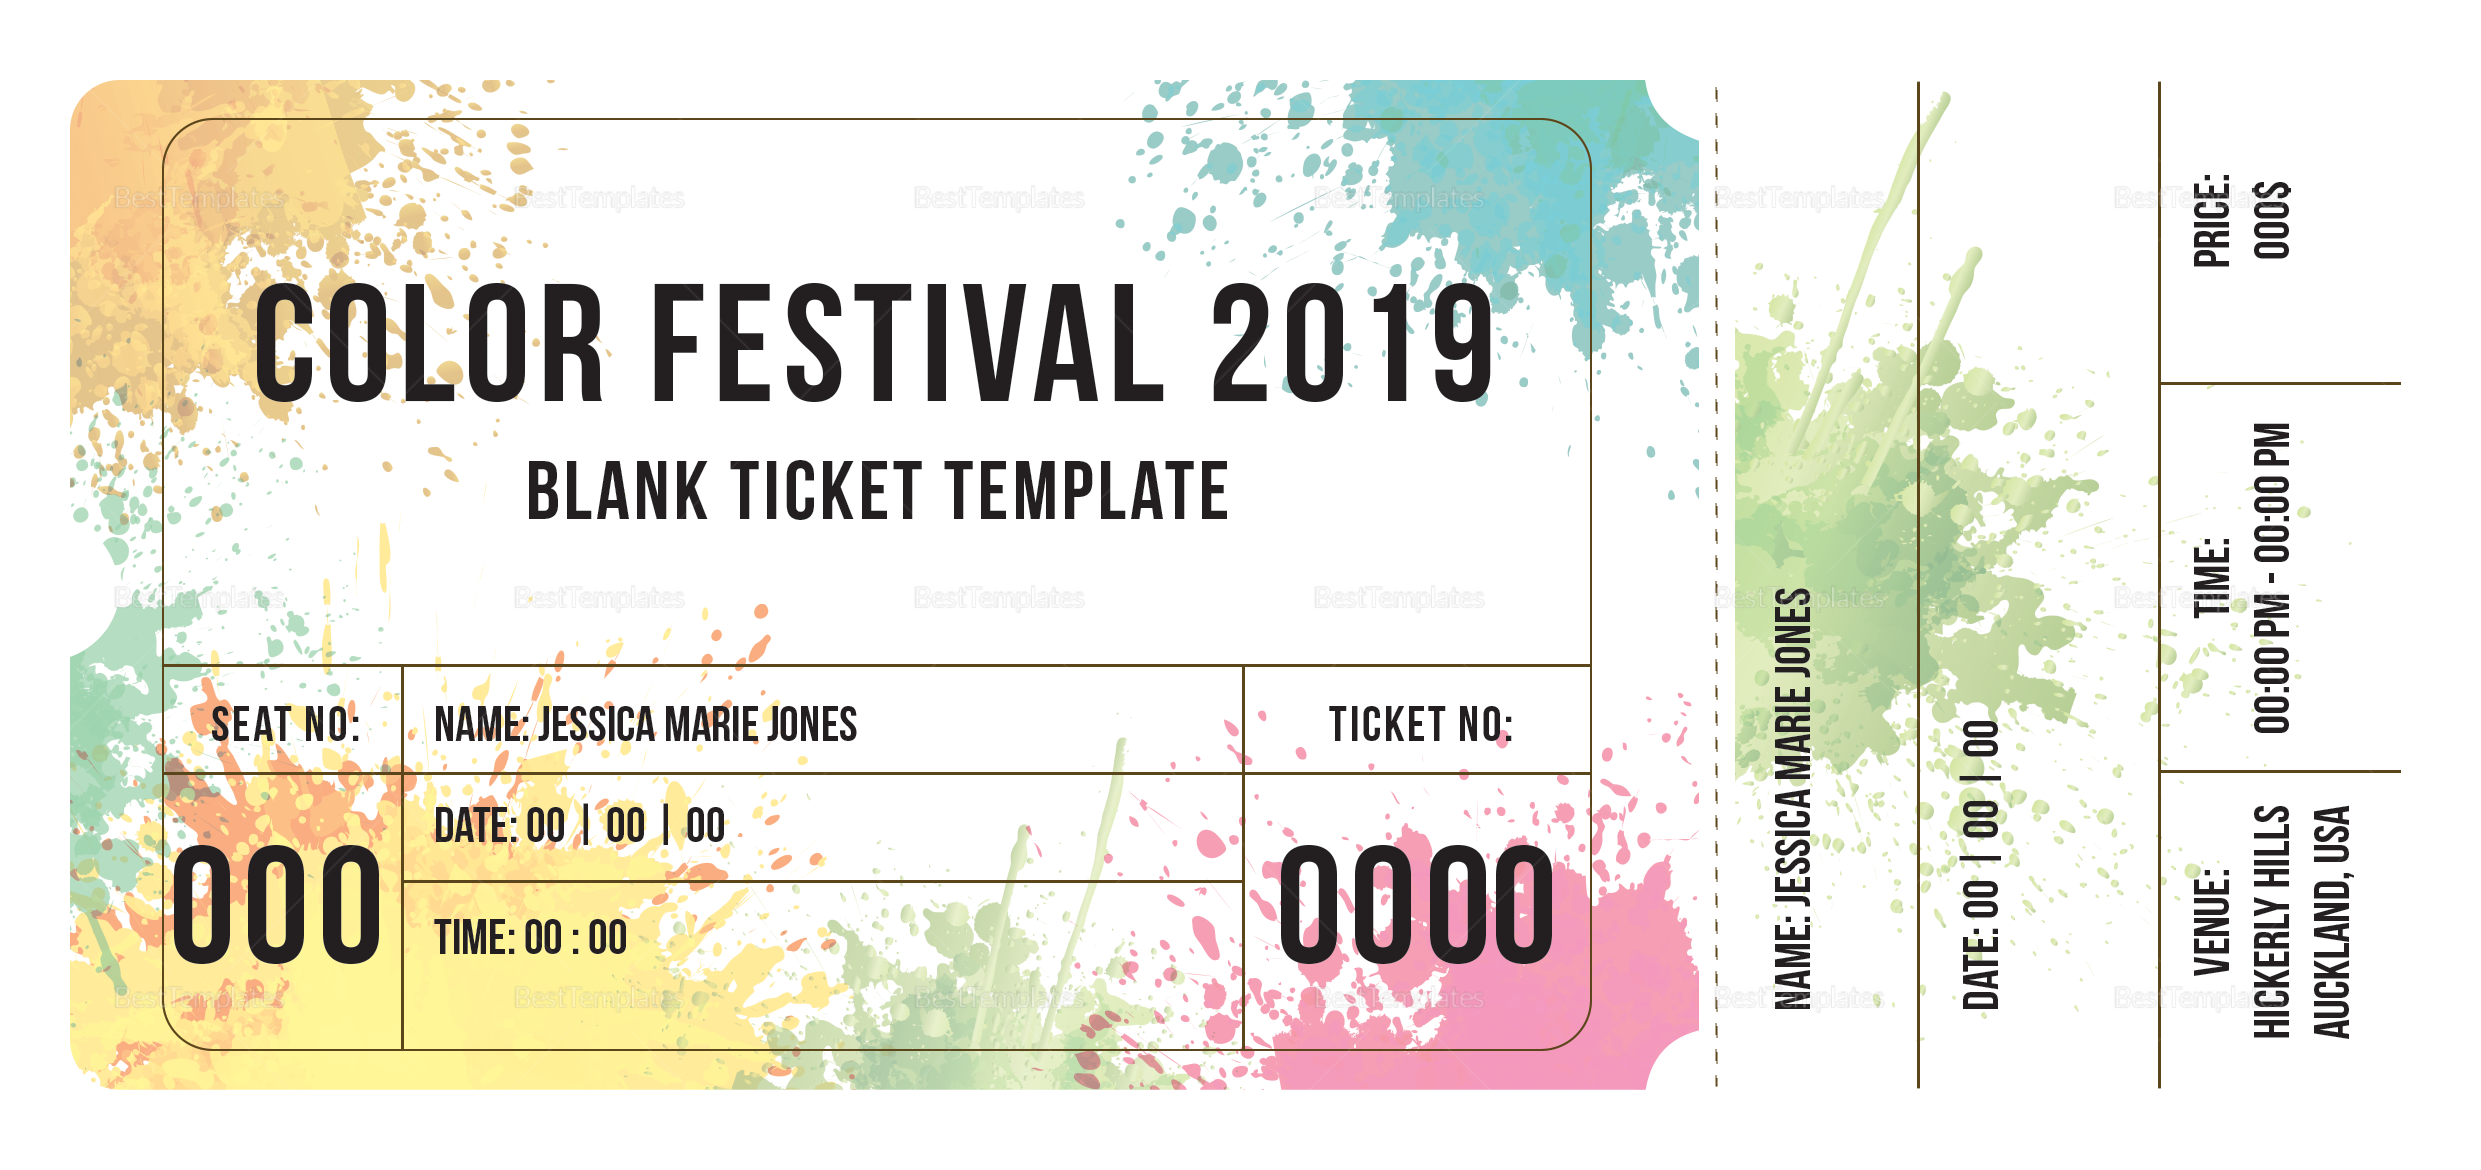 blank festival ticket design template in psd word publisher illustrator indesign. Black Bedroom Furniture Sets. Home Design Ideas